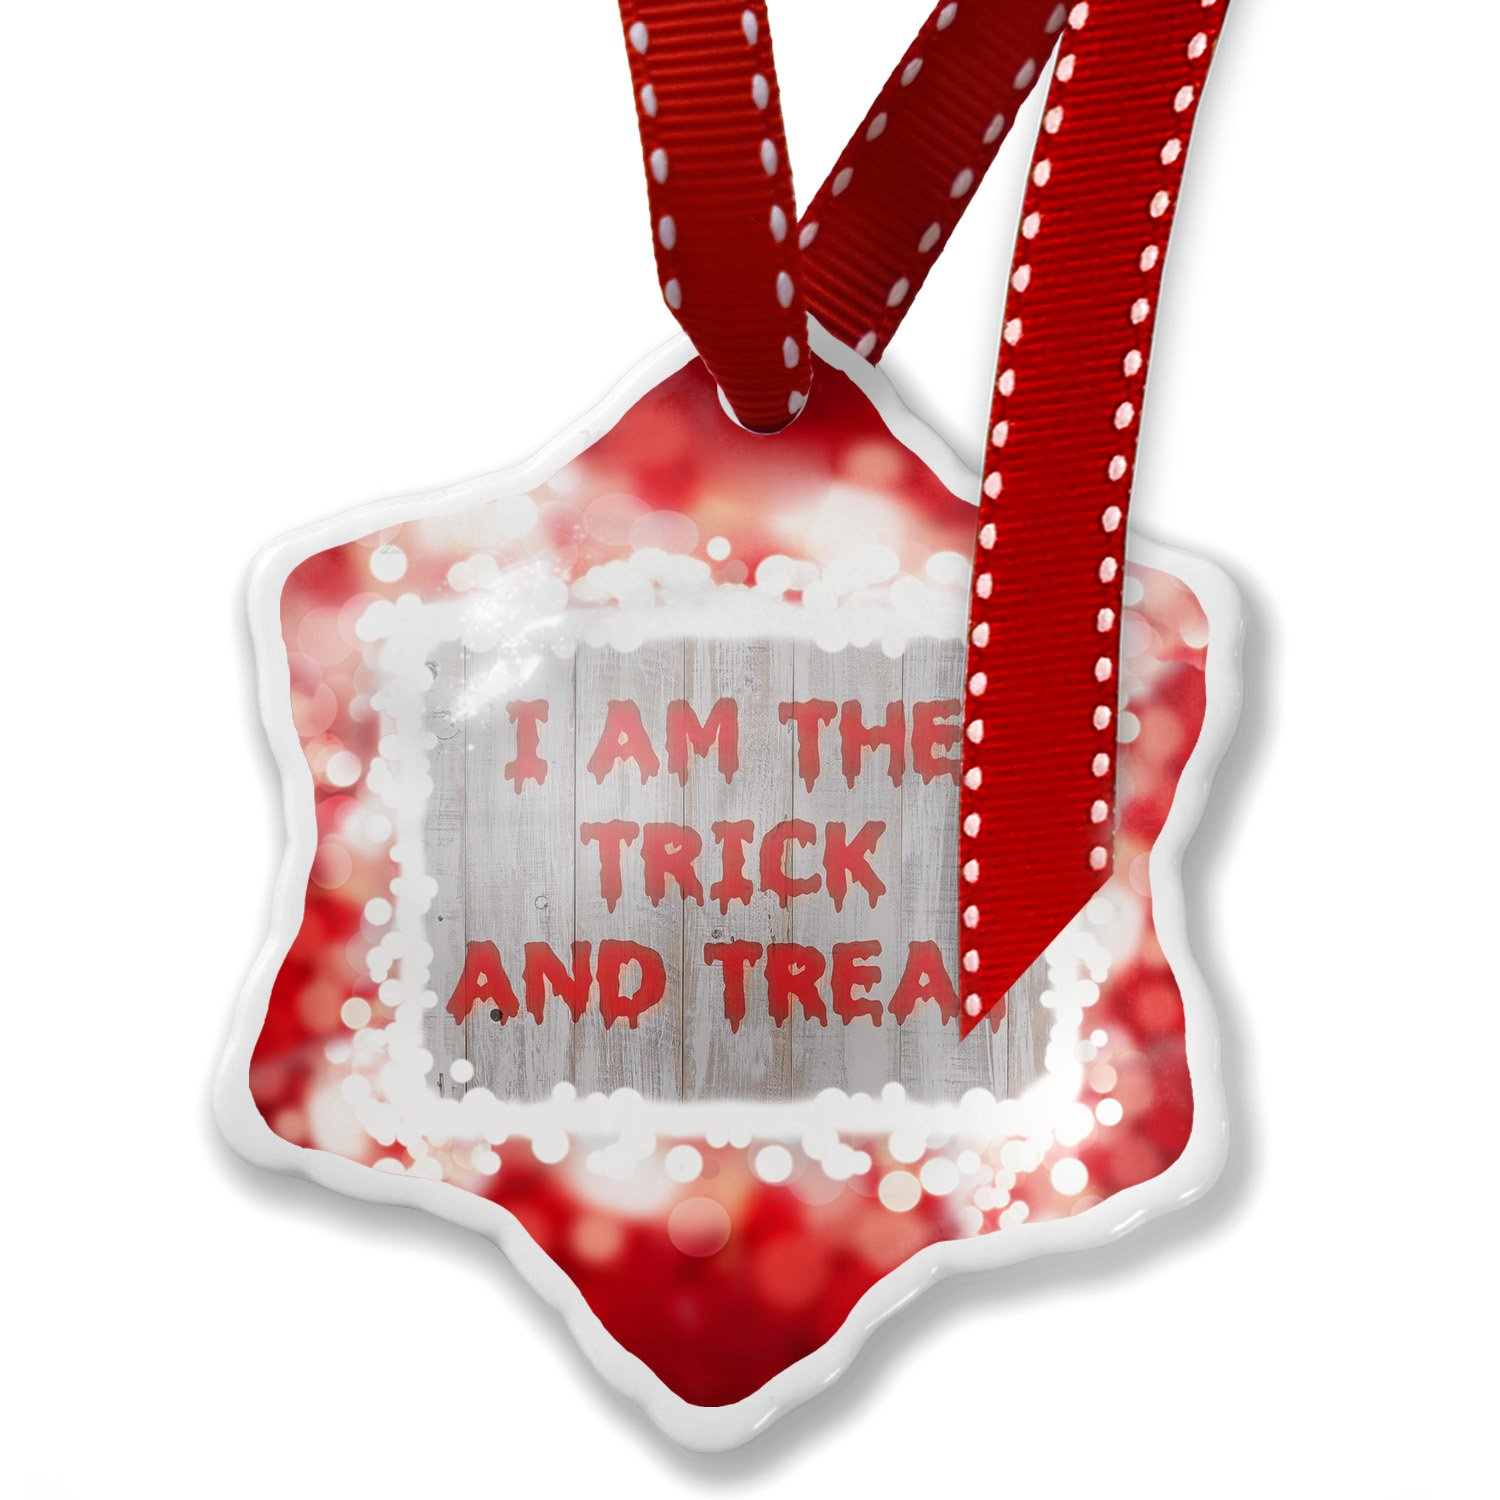 Christmas Ornament I am the Trick and Treat Halloween Bloody Wall, red - Neonblond